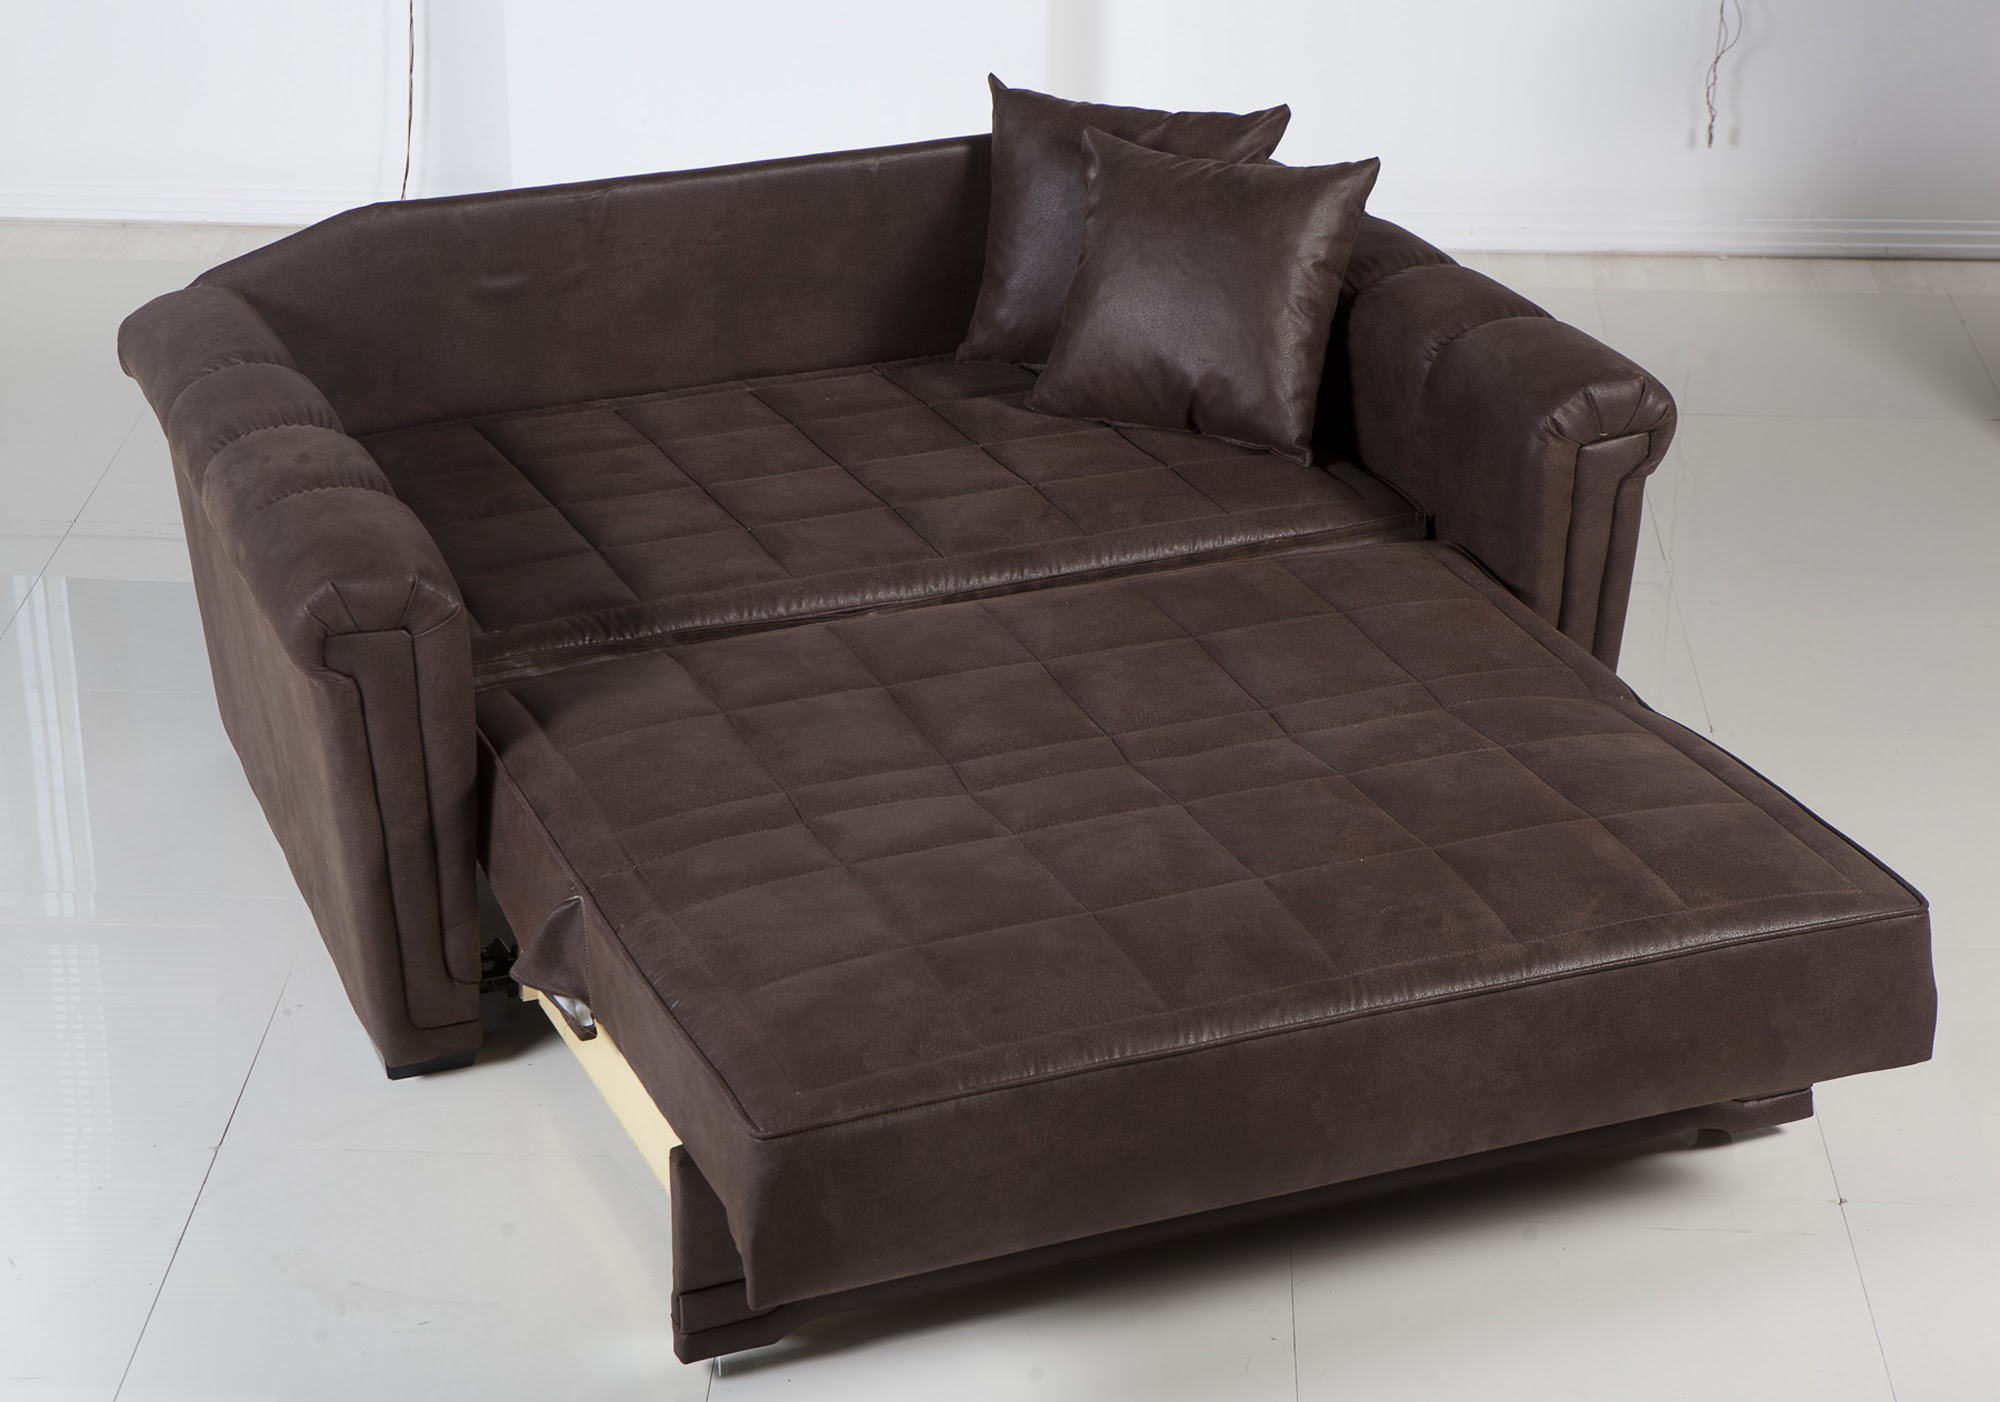 Dark leather loveseat sleeper idea with a pair of leather pillows